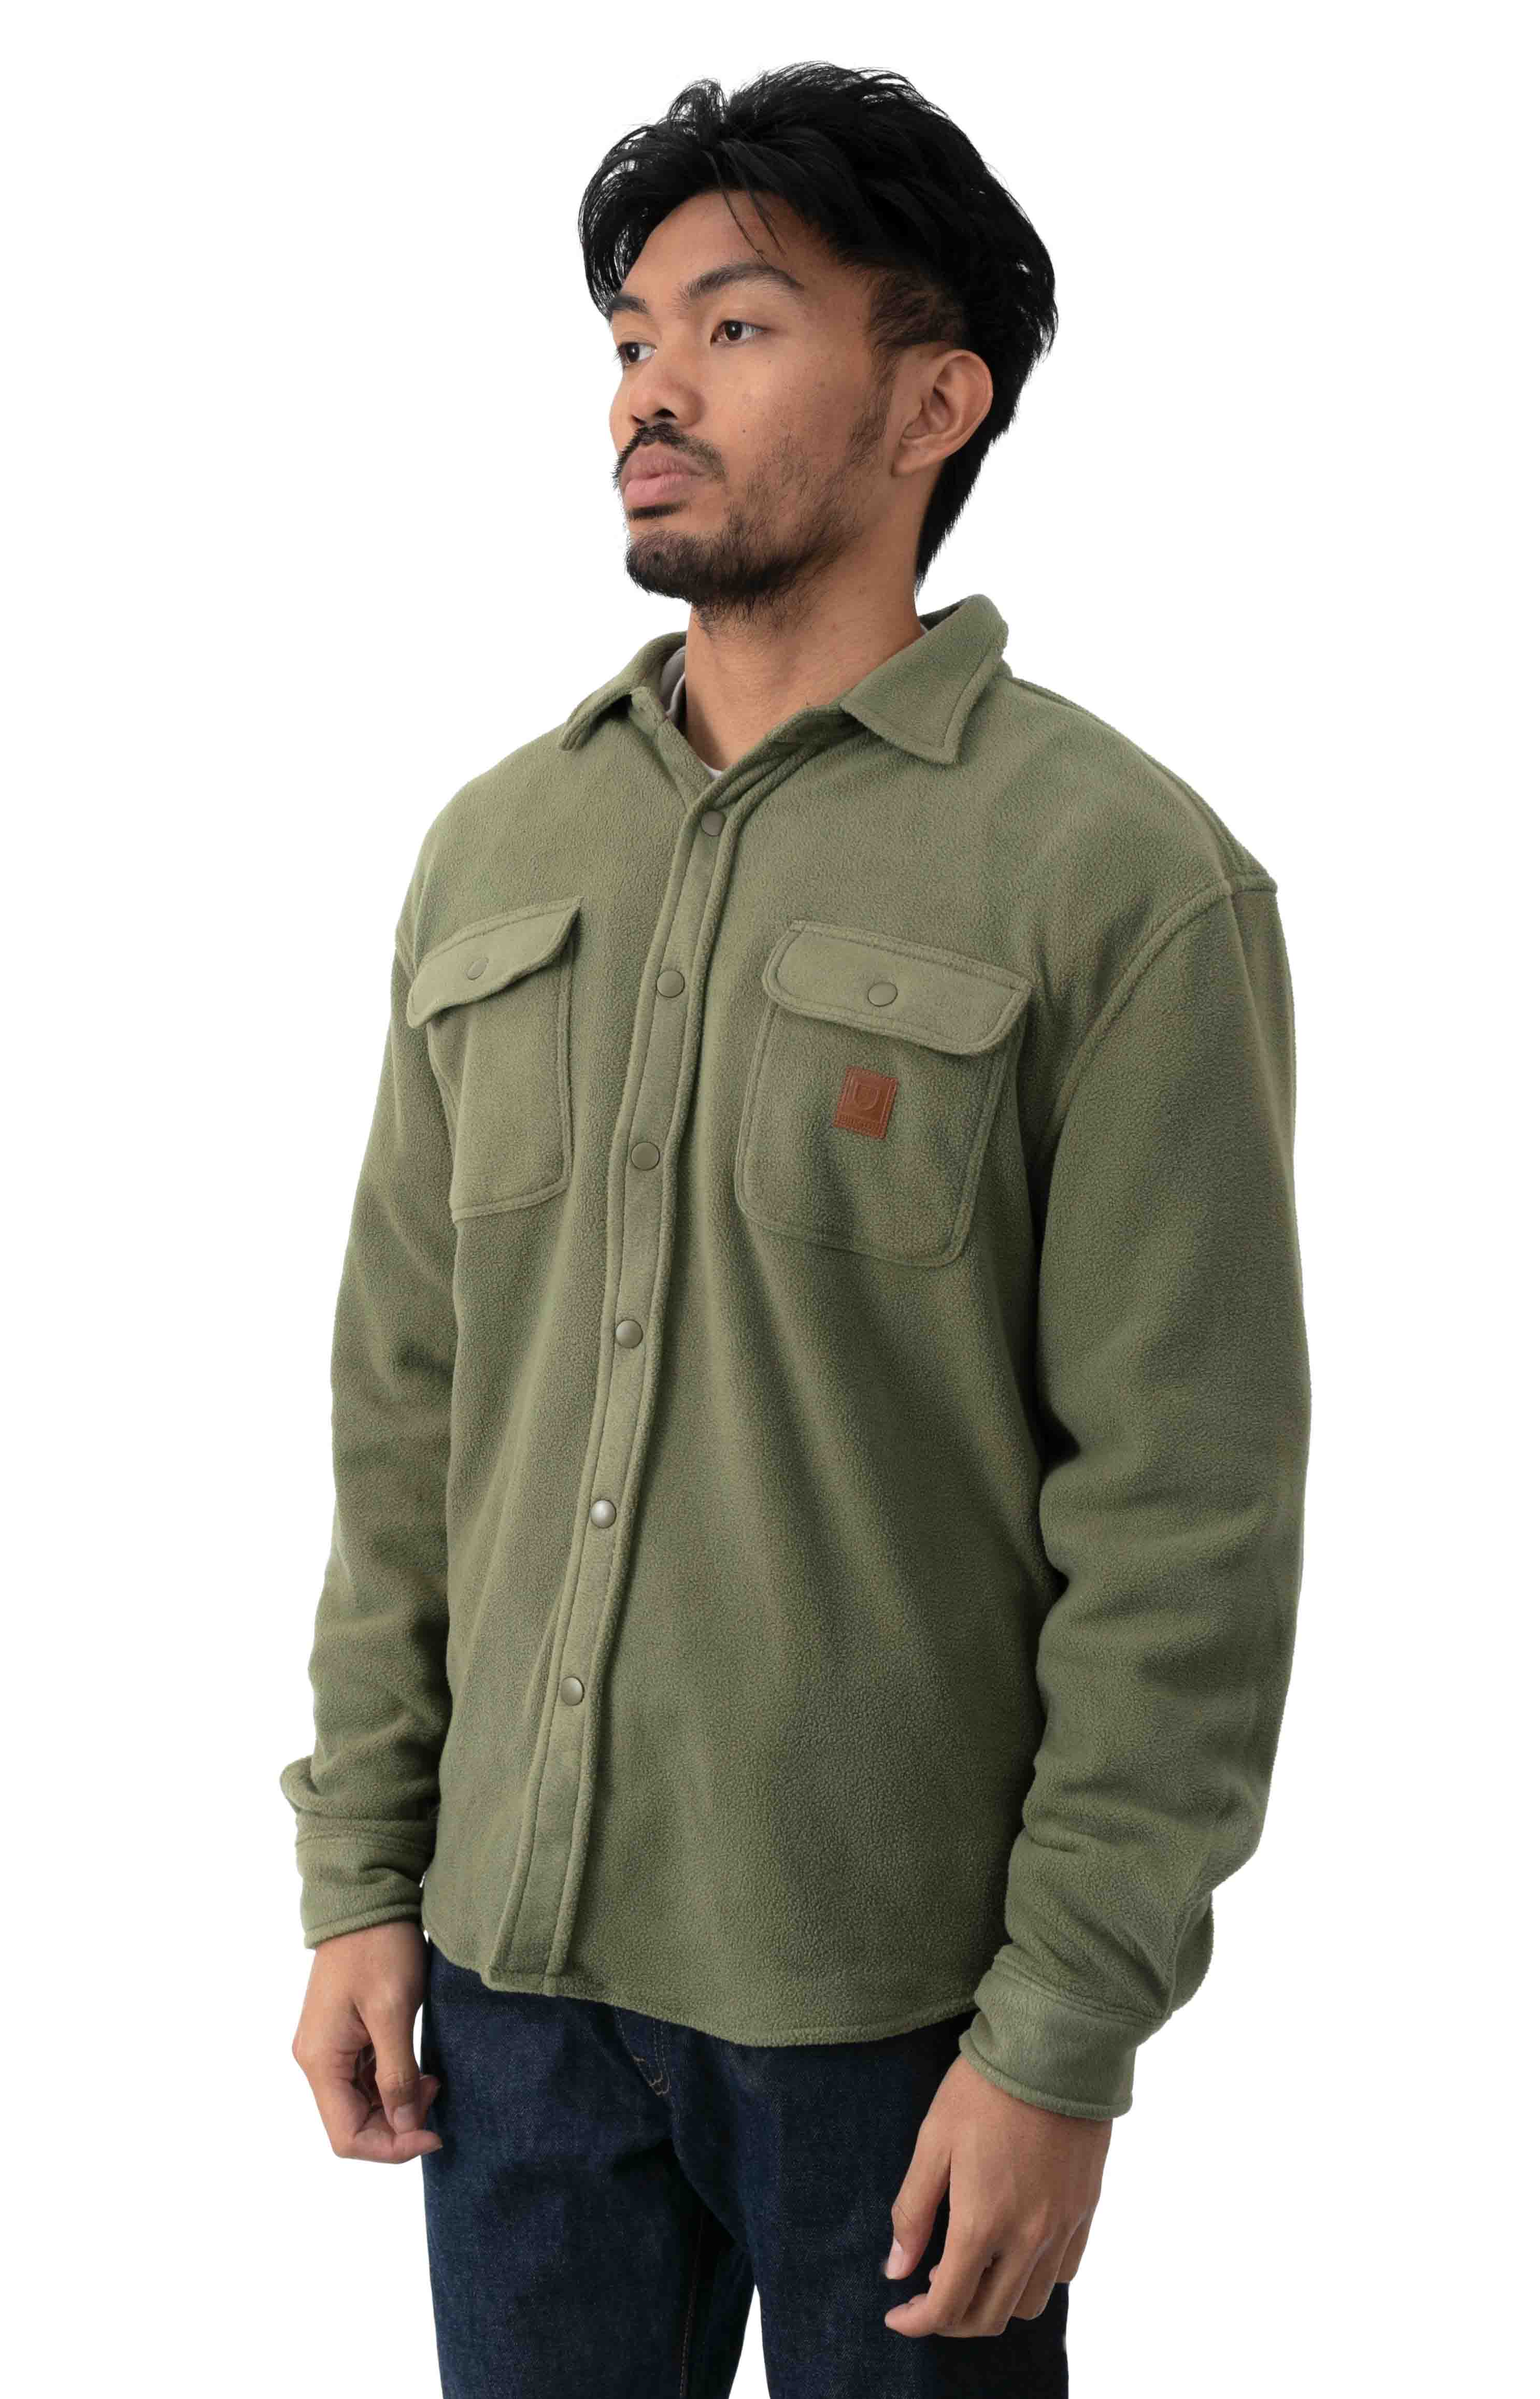 Bowery L/S Arctic Stretch Fleece - Military Olive 2